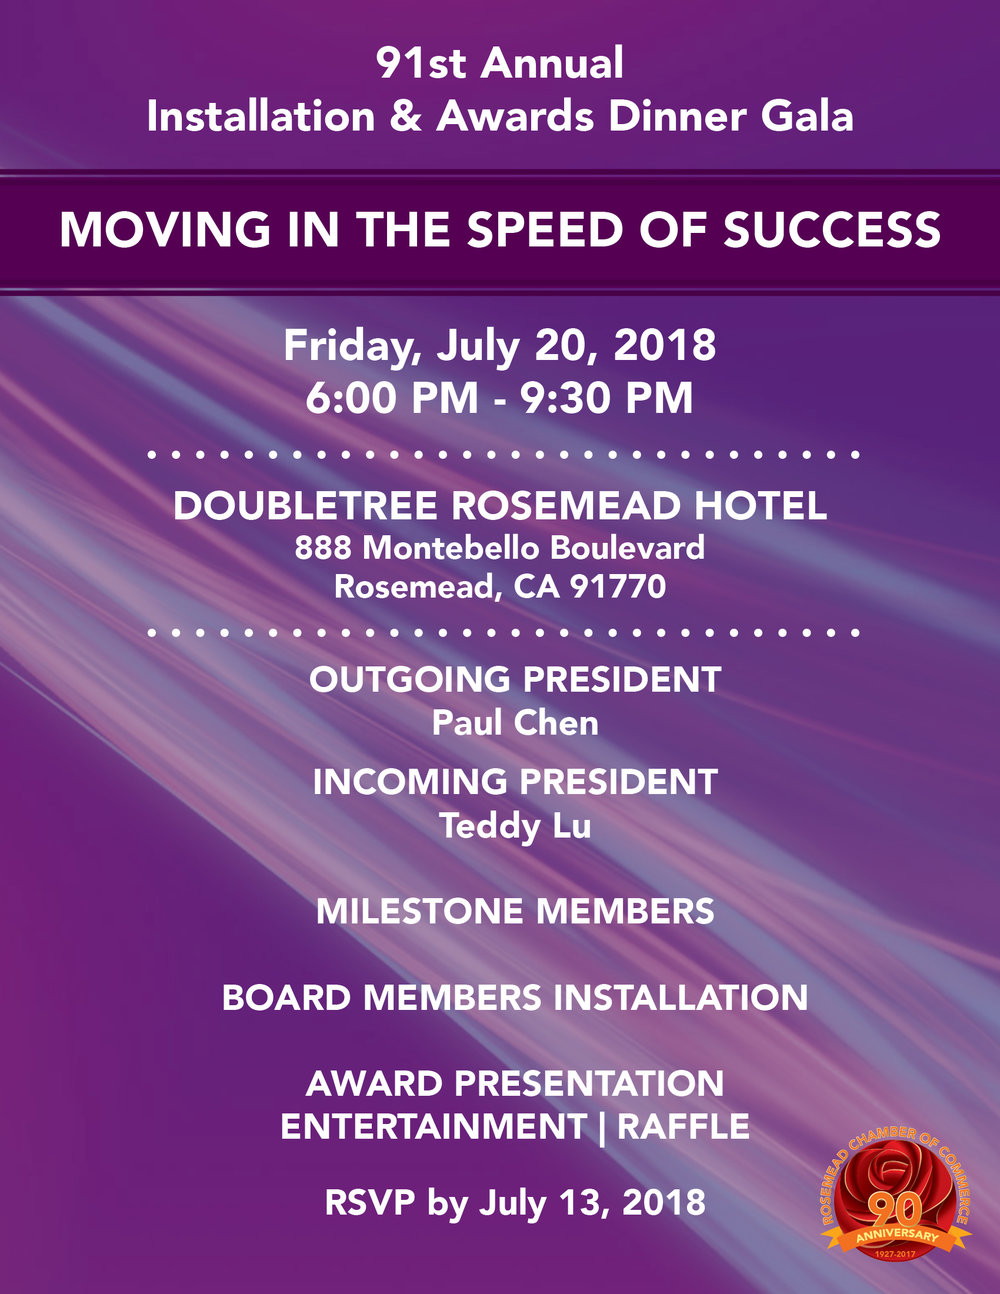 91st Annual installation &awards dinner gala - Friday, July 20th, 2018Click for More Information and for Sponsorship Opportunities